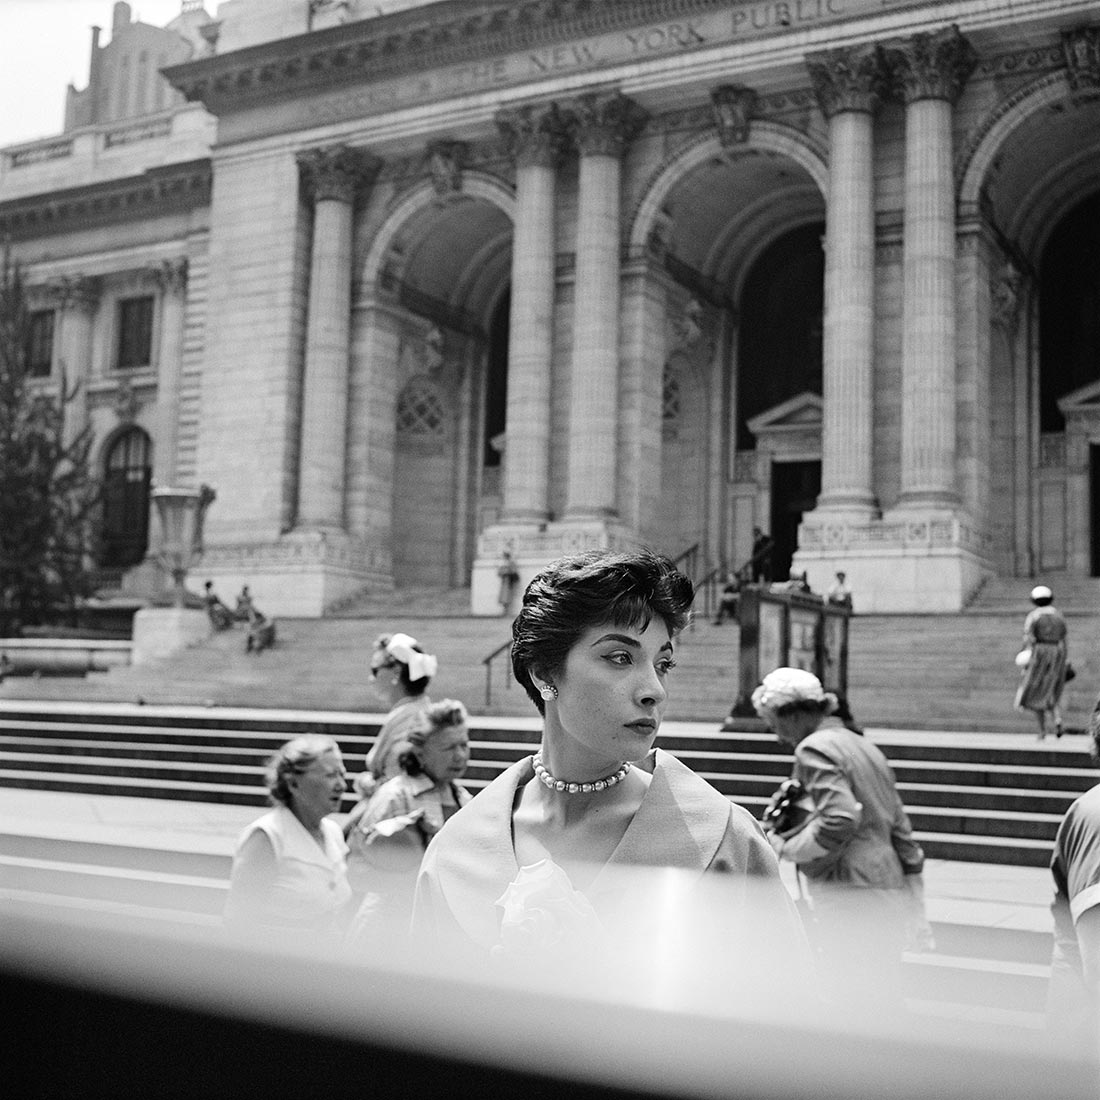 Vivian Maier, Undated, New York, NY